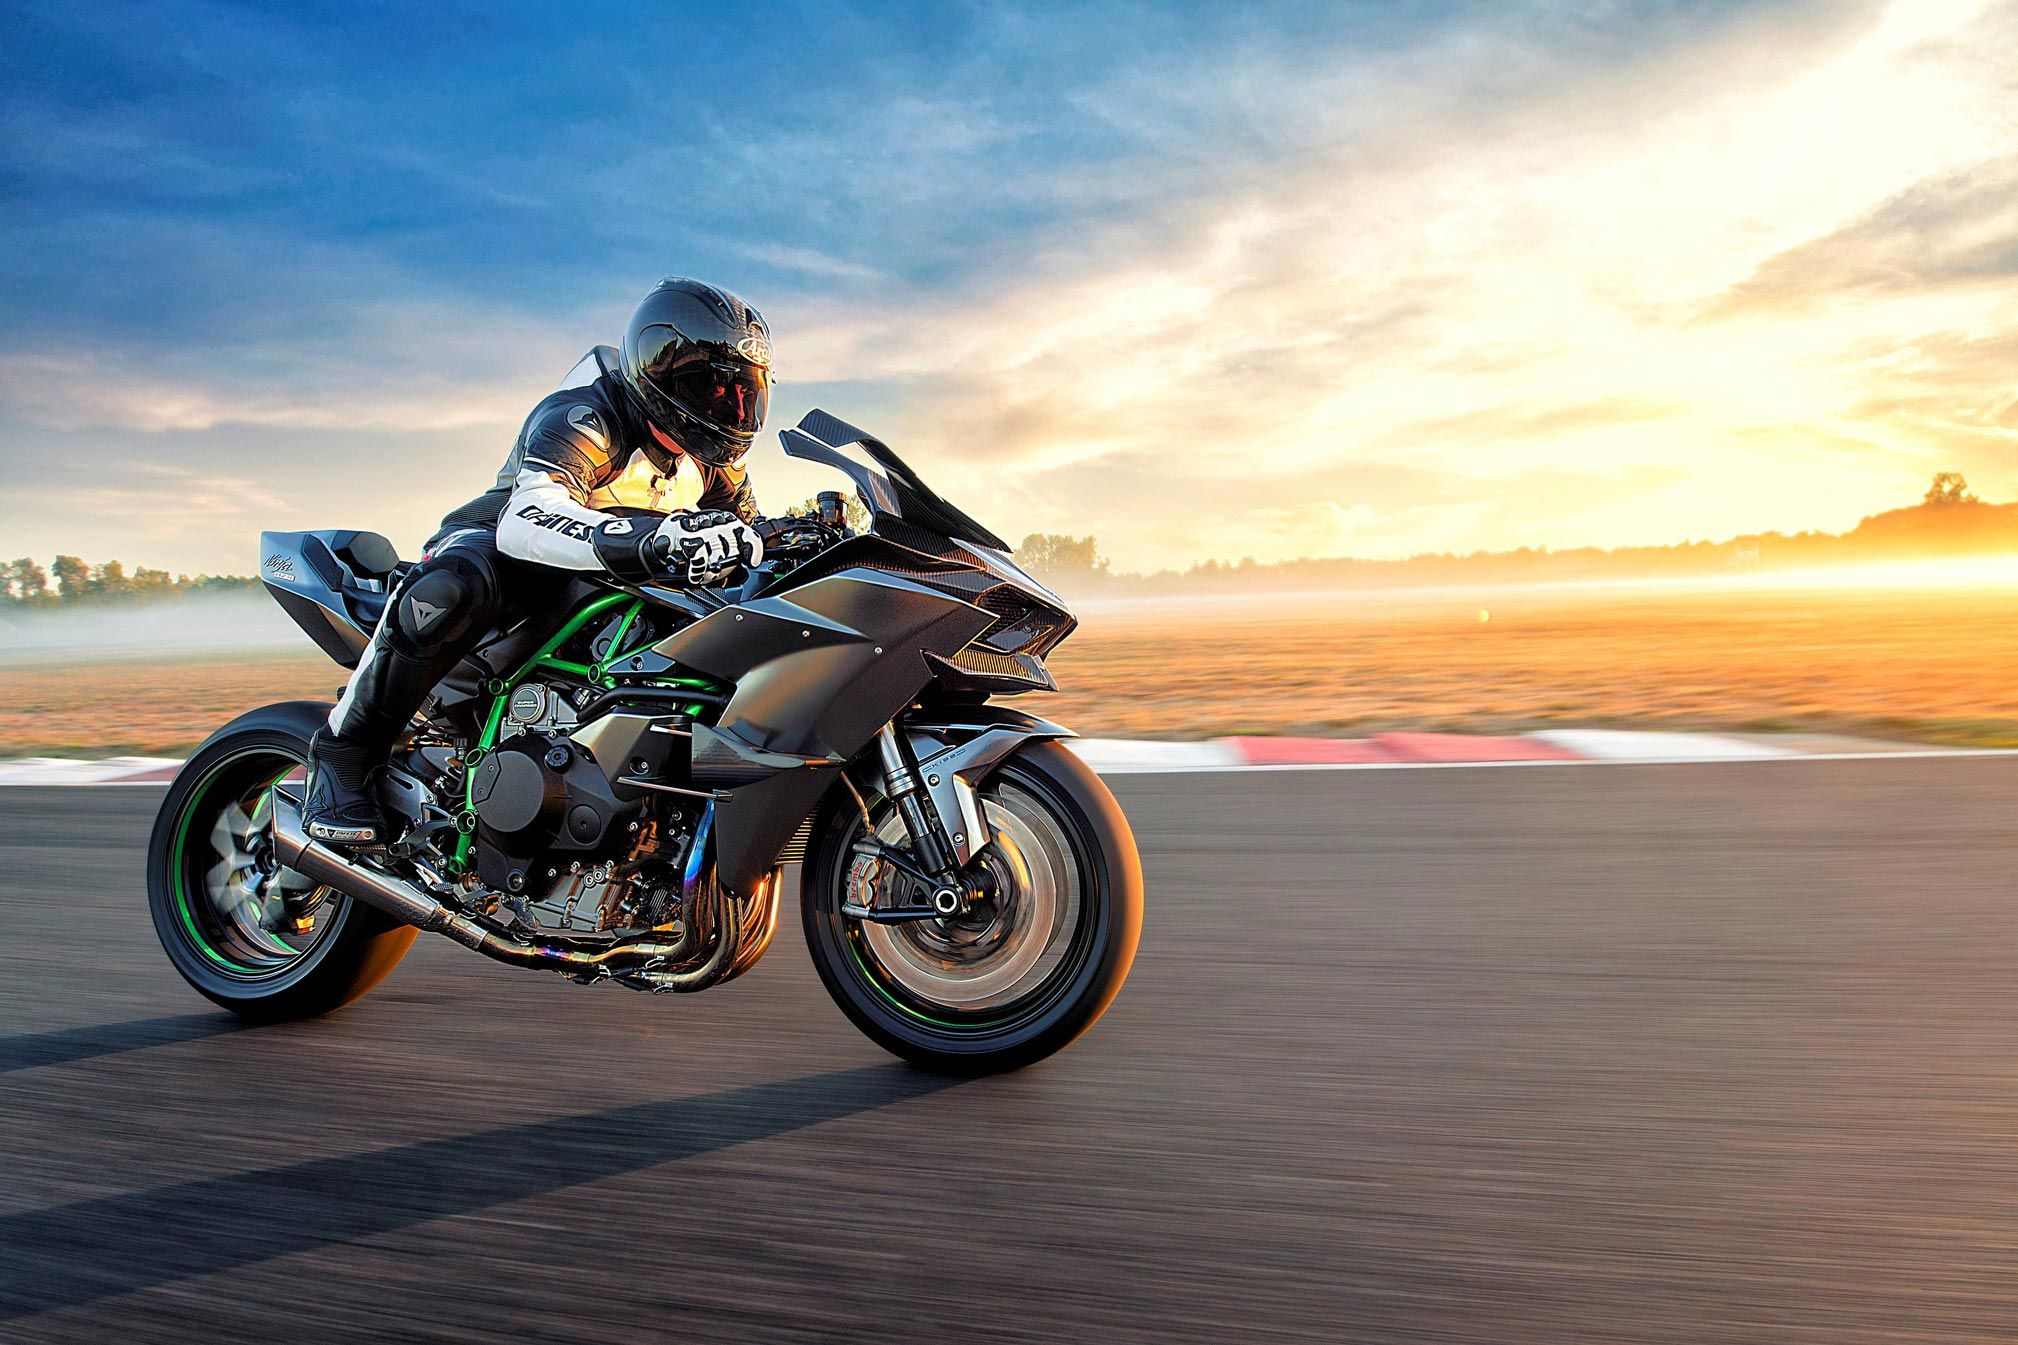 Top 10 Fastest Bikes In The World 2019 Motorcycle Bike Ducati